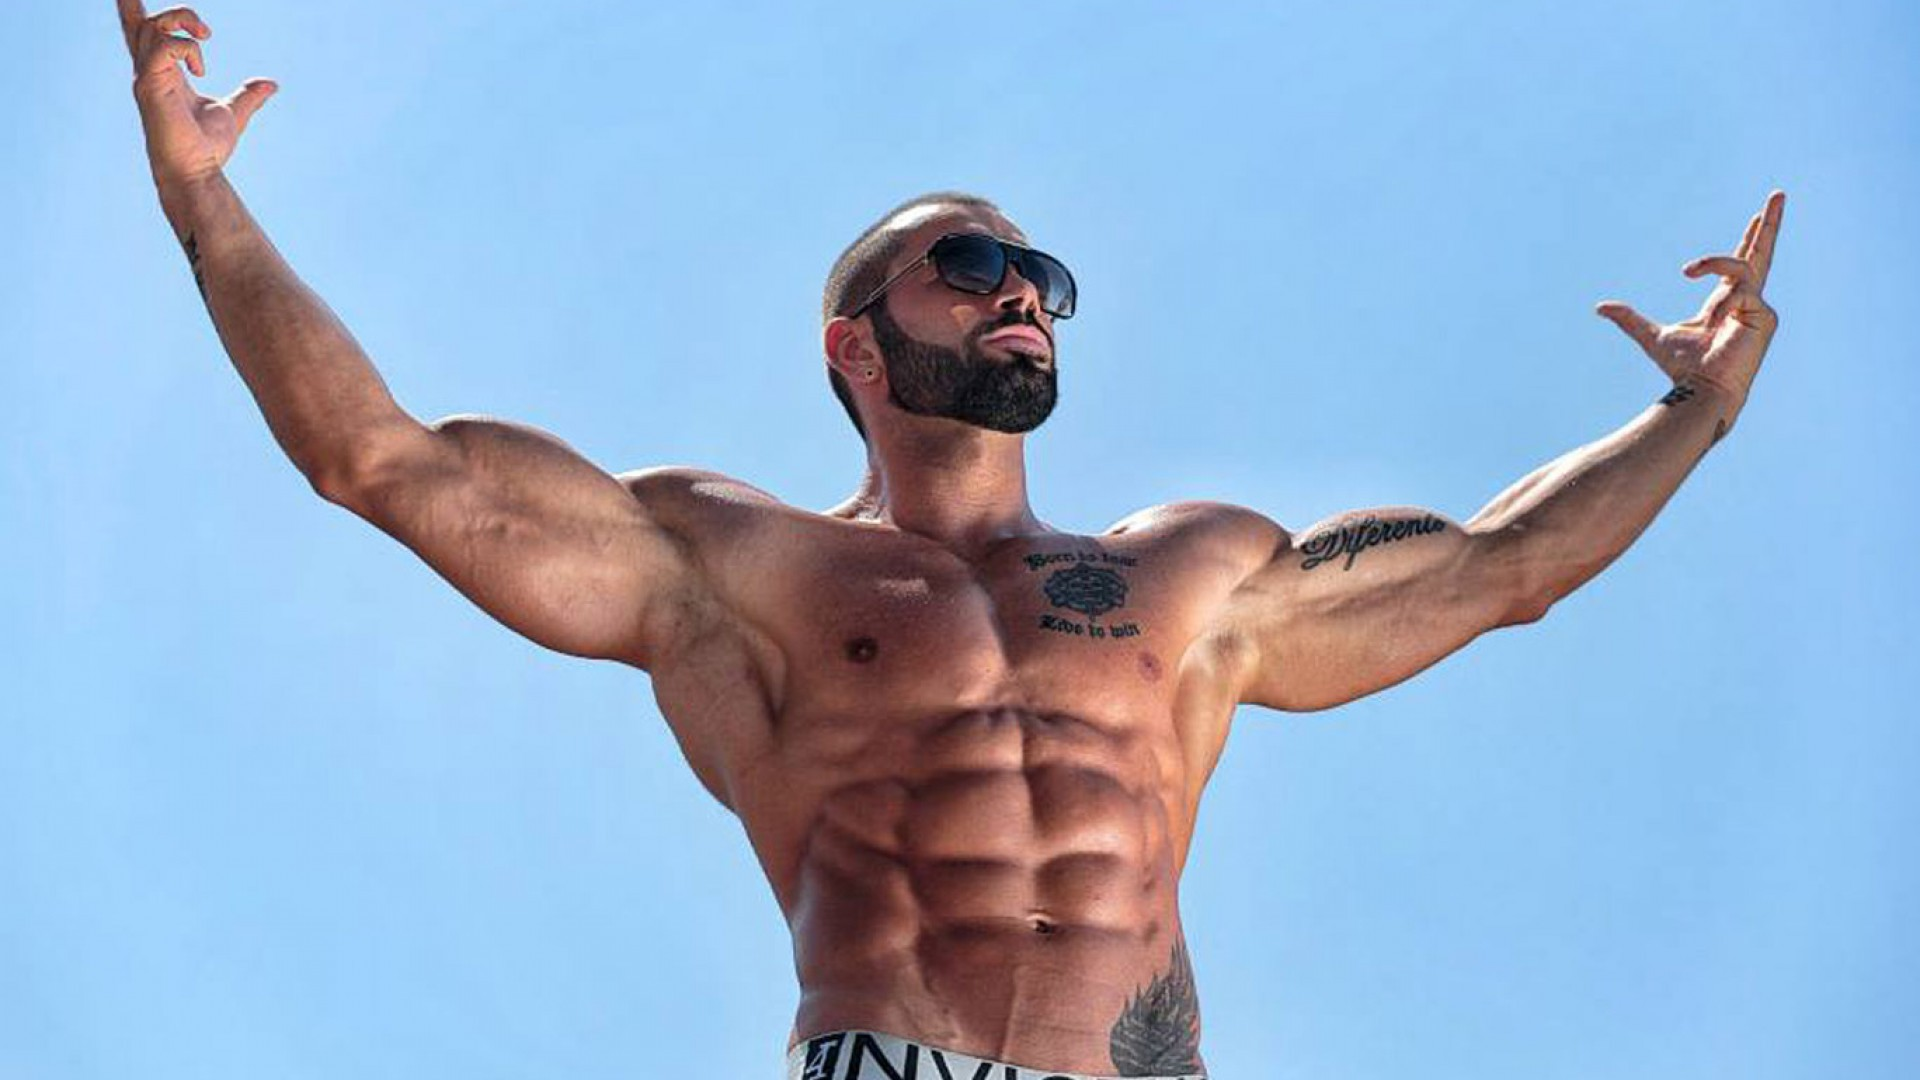 Lazar-Angelov-Wallpapers